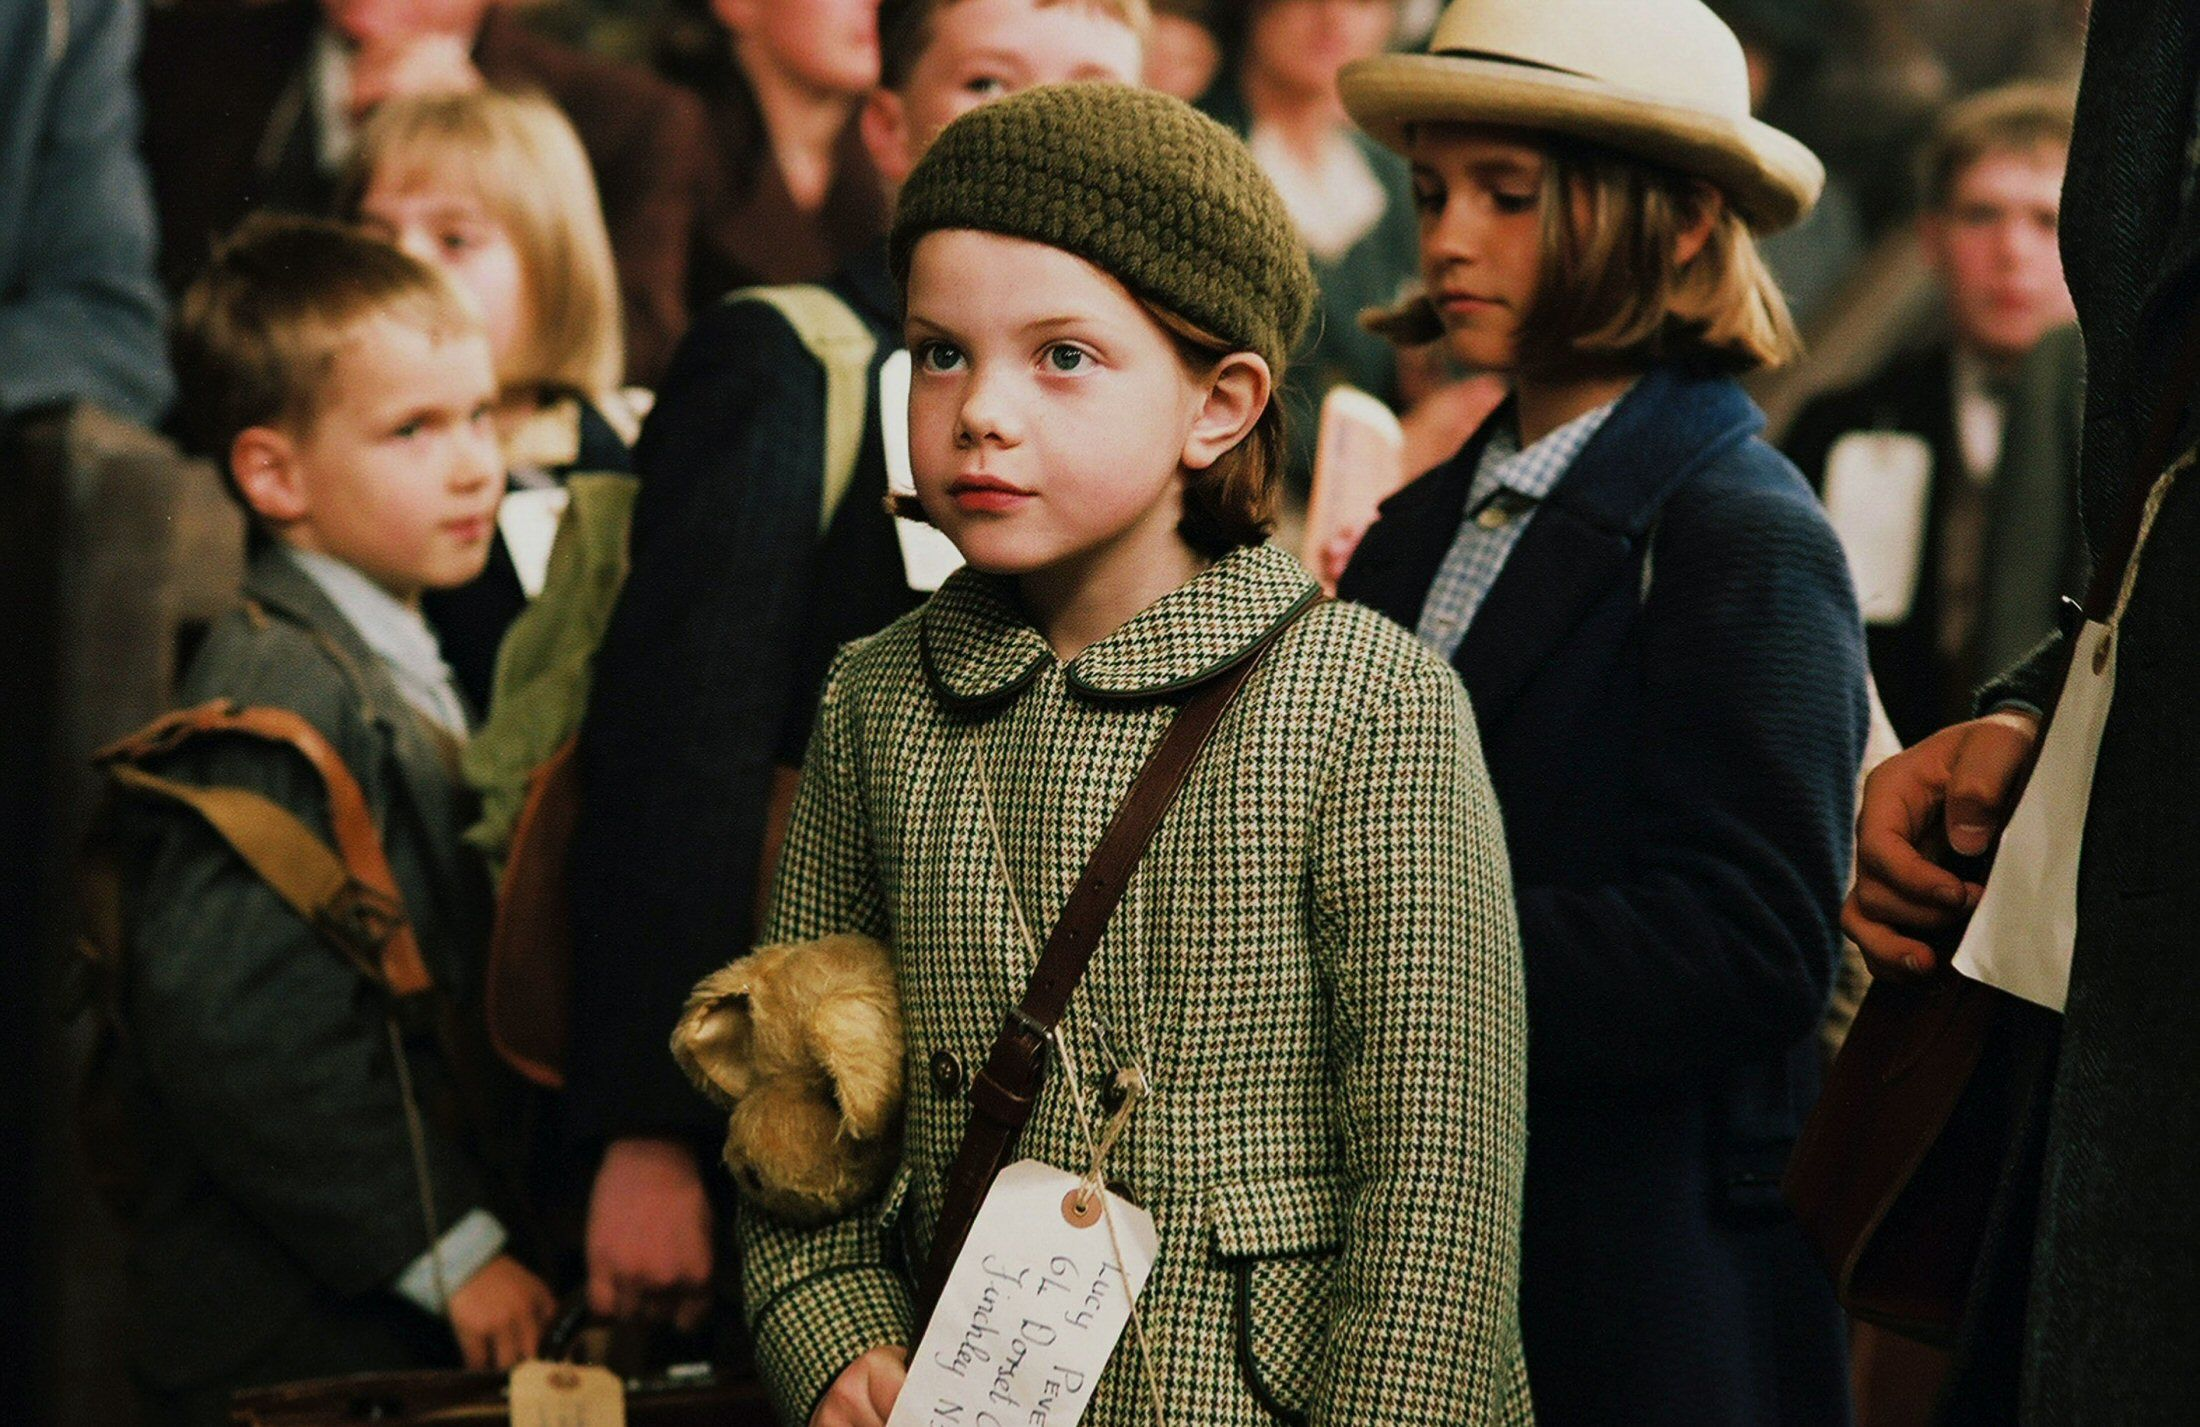 Aww Lucy <3 #Narnia   narnia   Pinterest   Narnia, Narnia lucy and ...